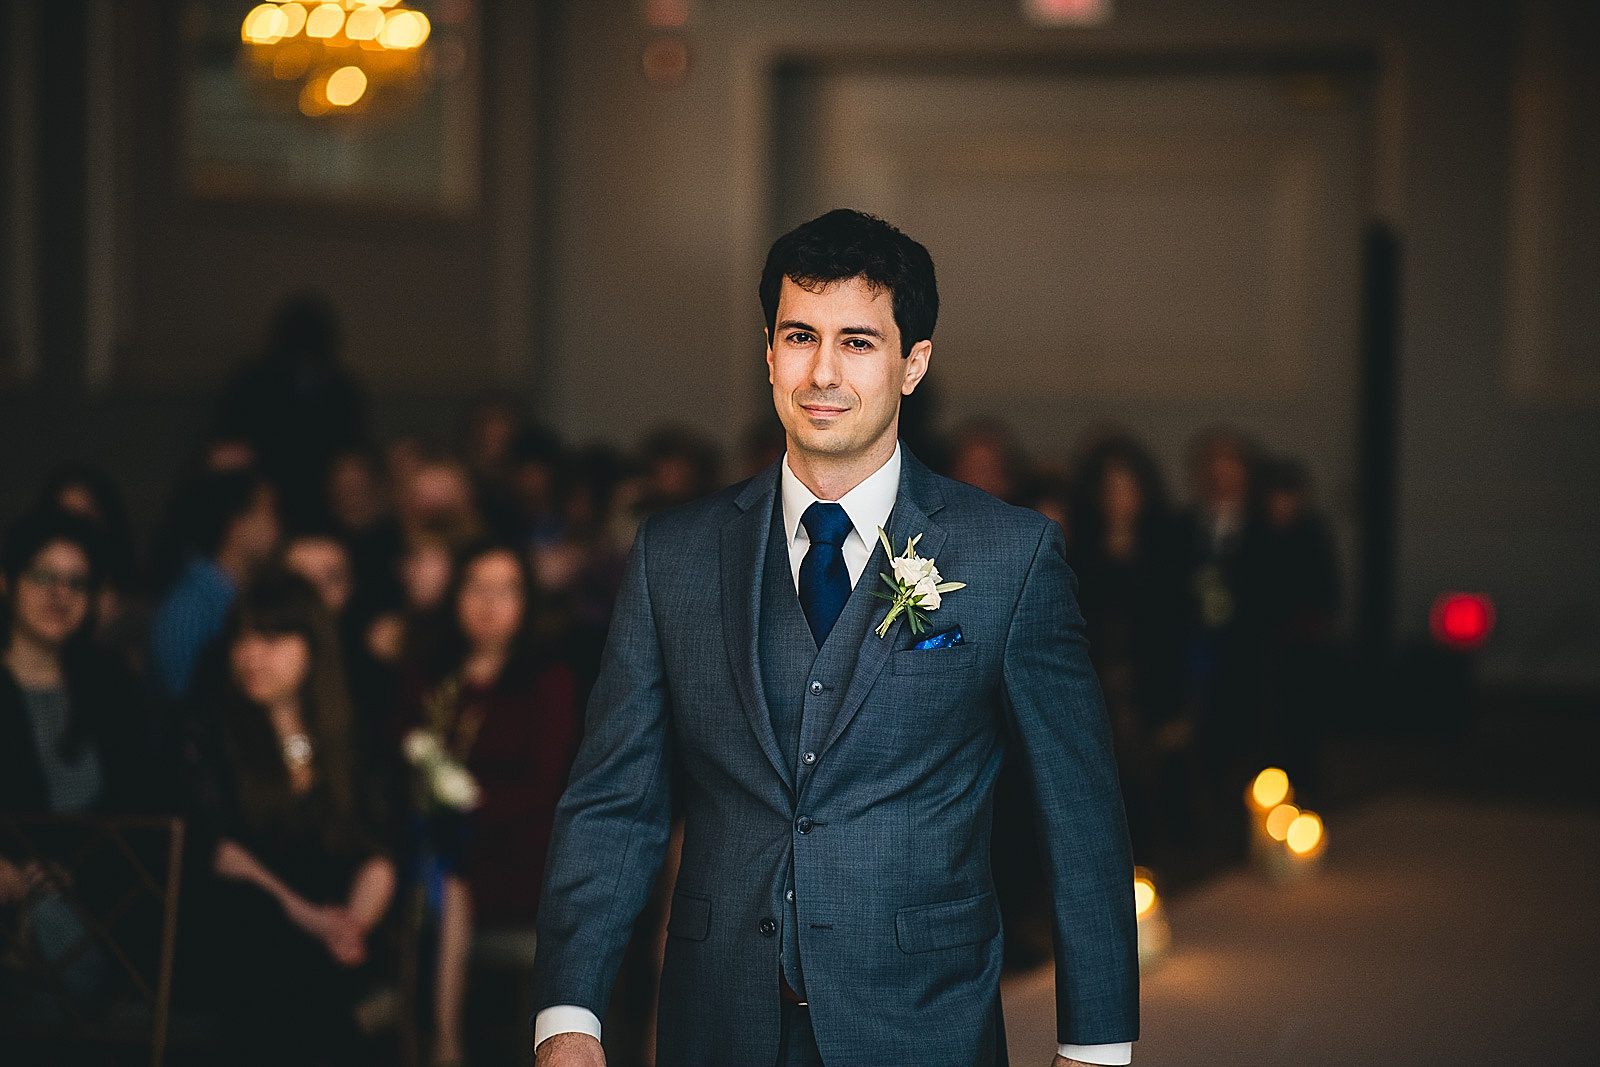 22 groom walking down the aisle at drury lane - Oakbrook Wedding Photos at Drury Lane // Marina + Joe